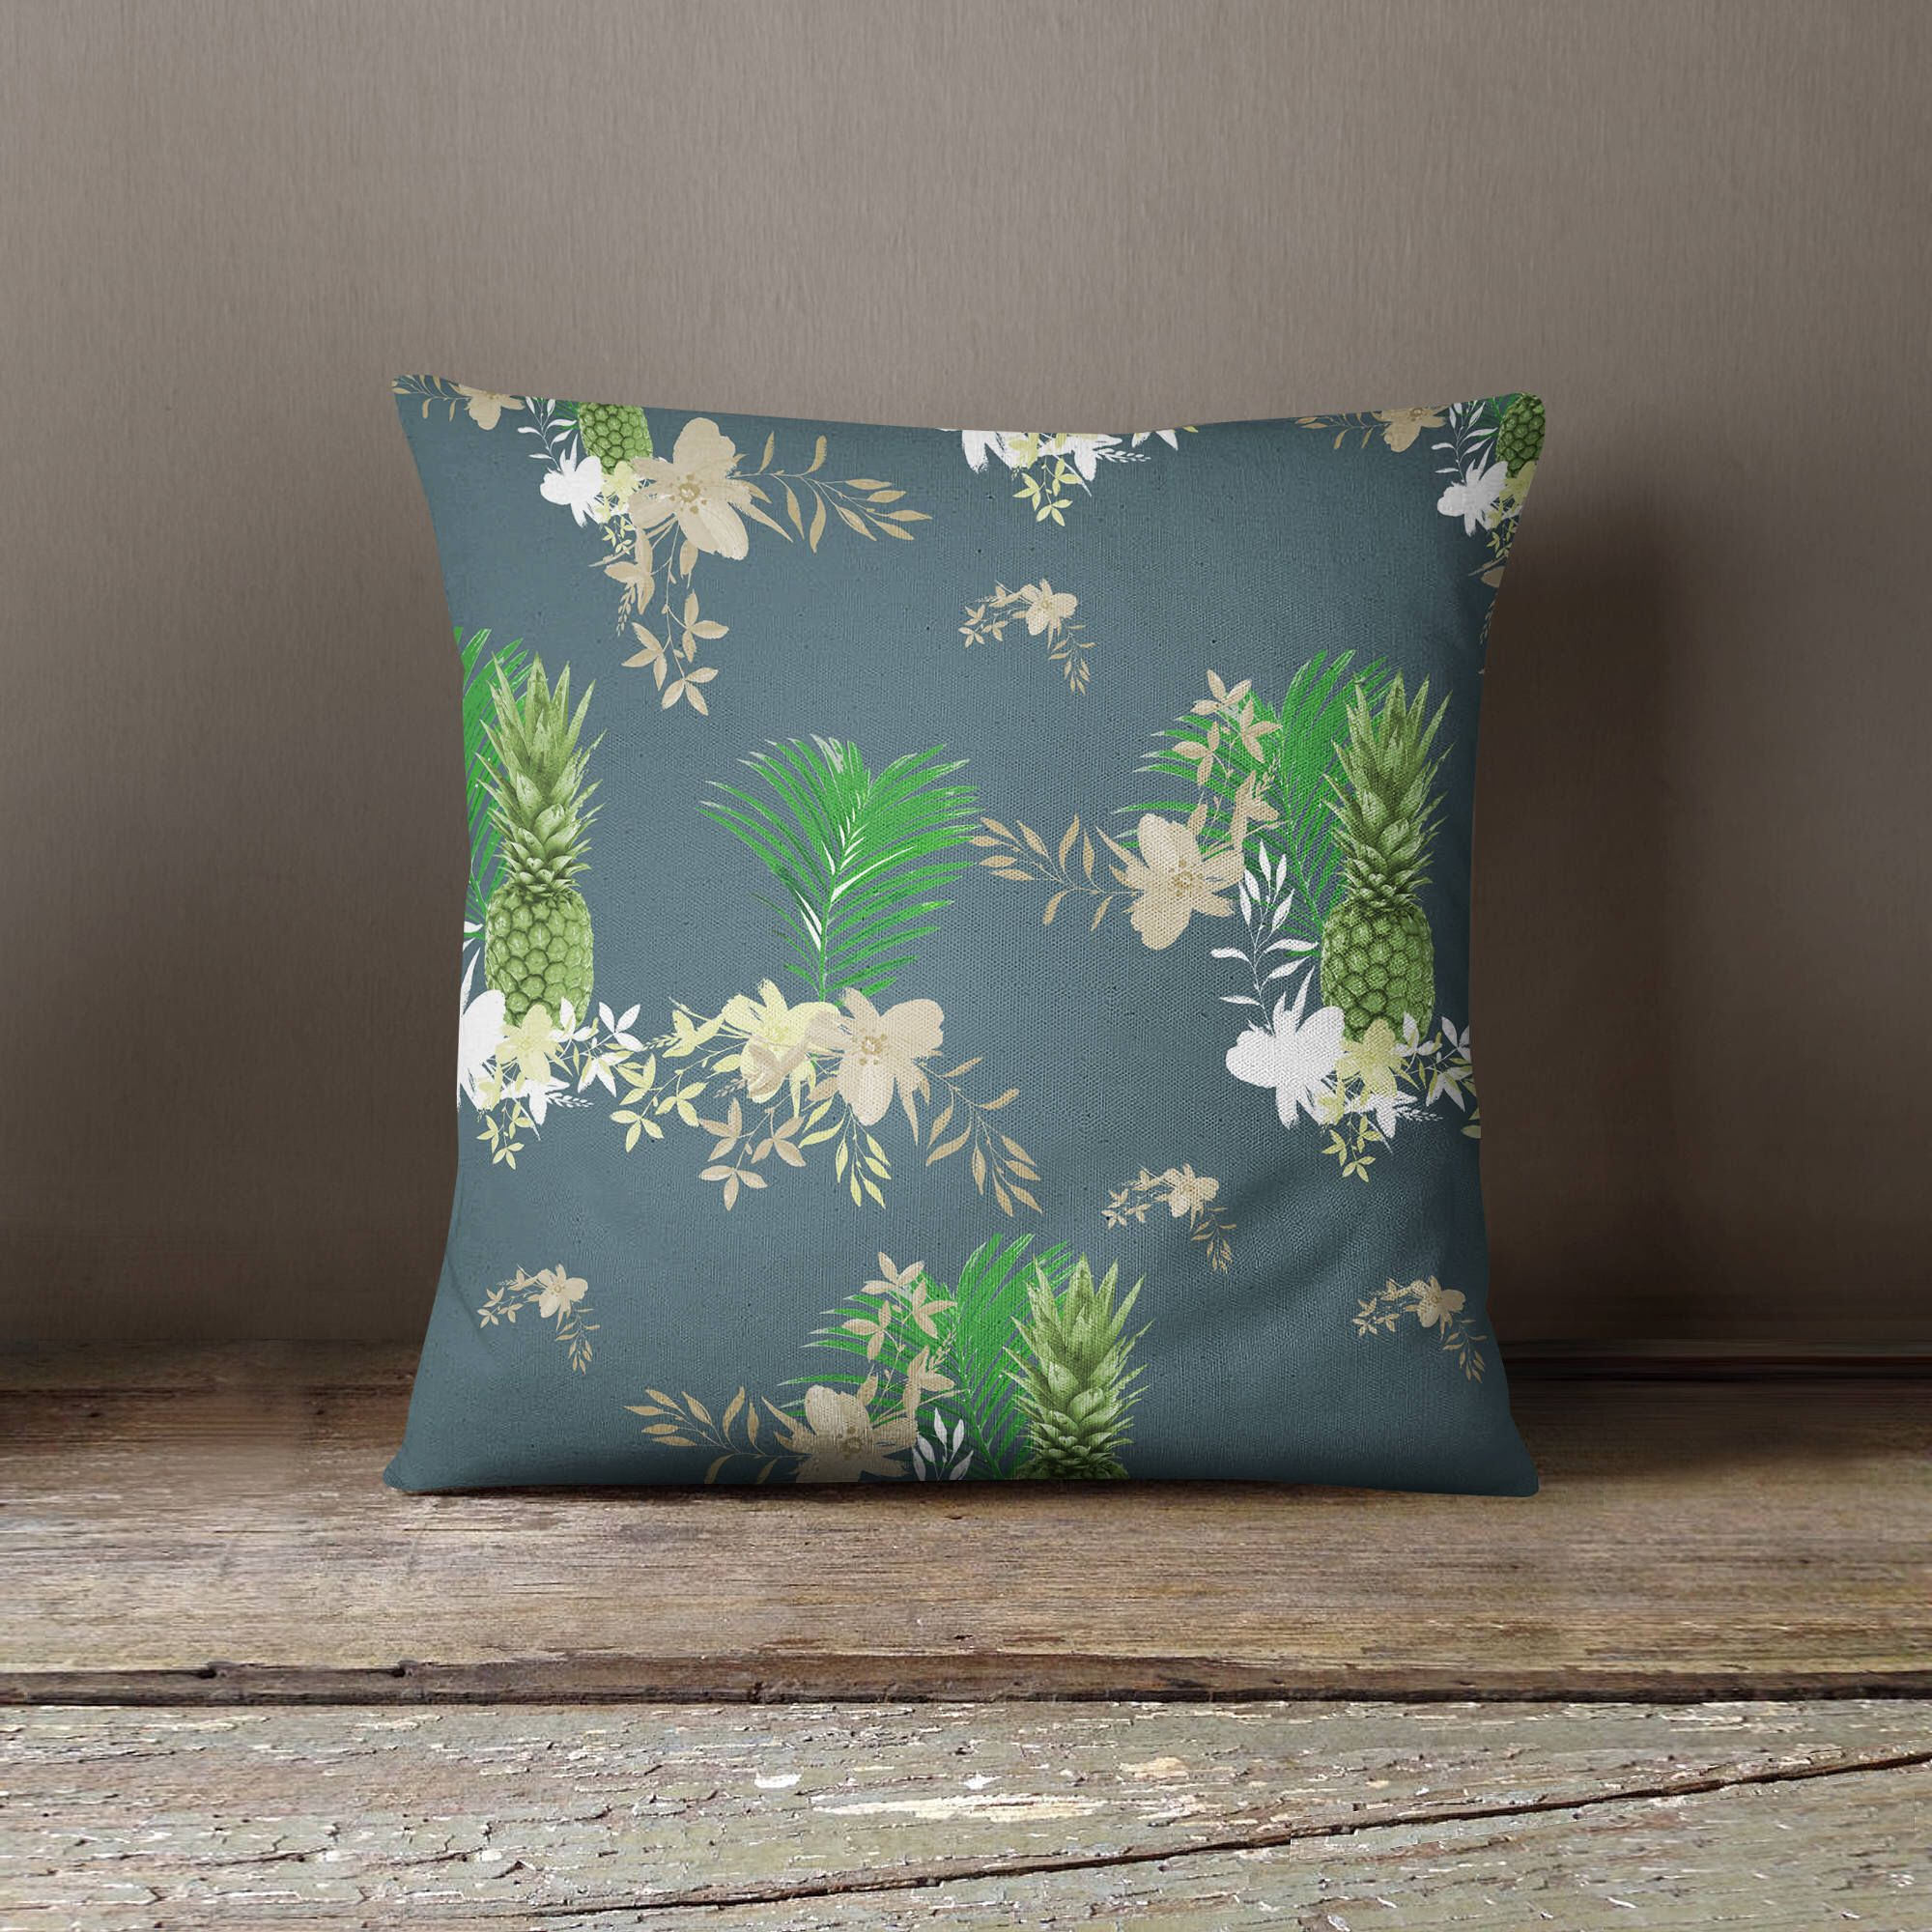 Pineapple cushions cushion cover pineapple scatter cushions blue